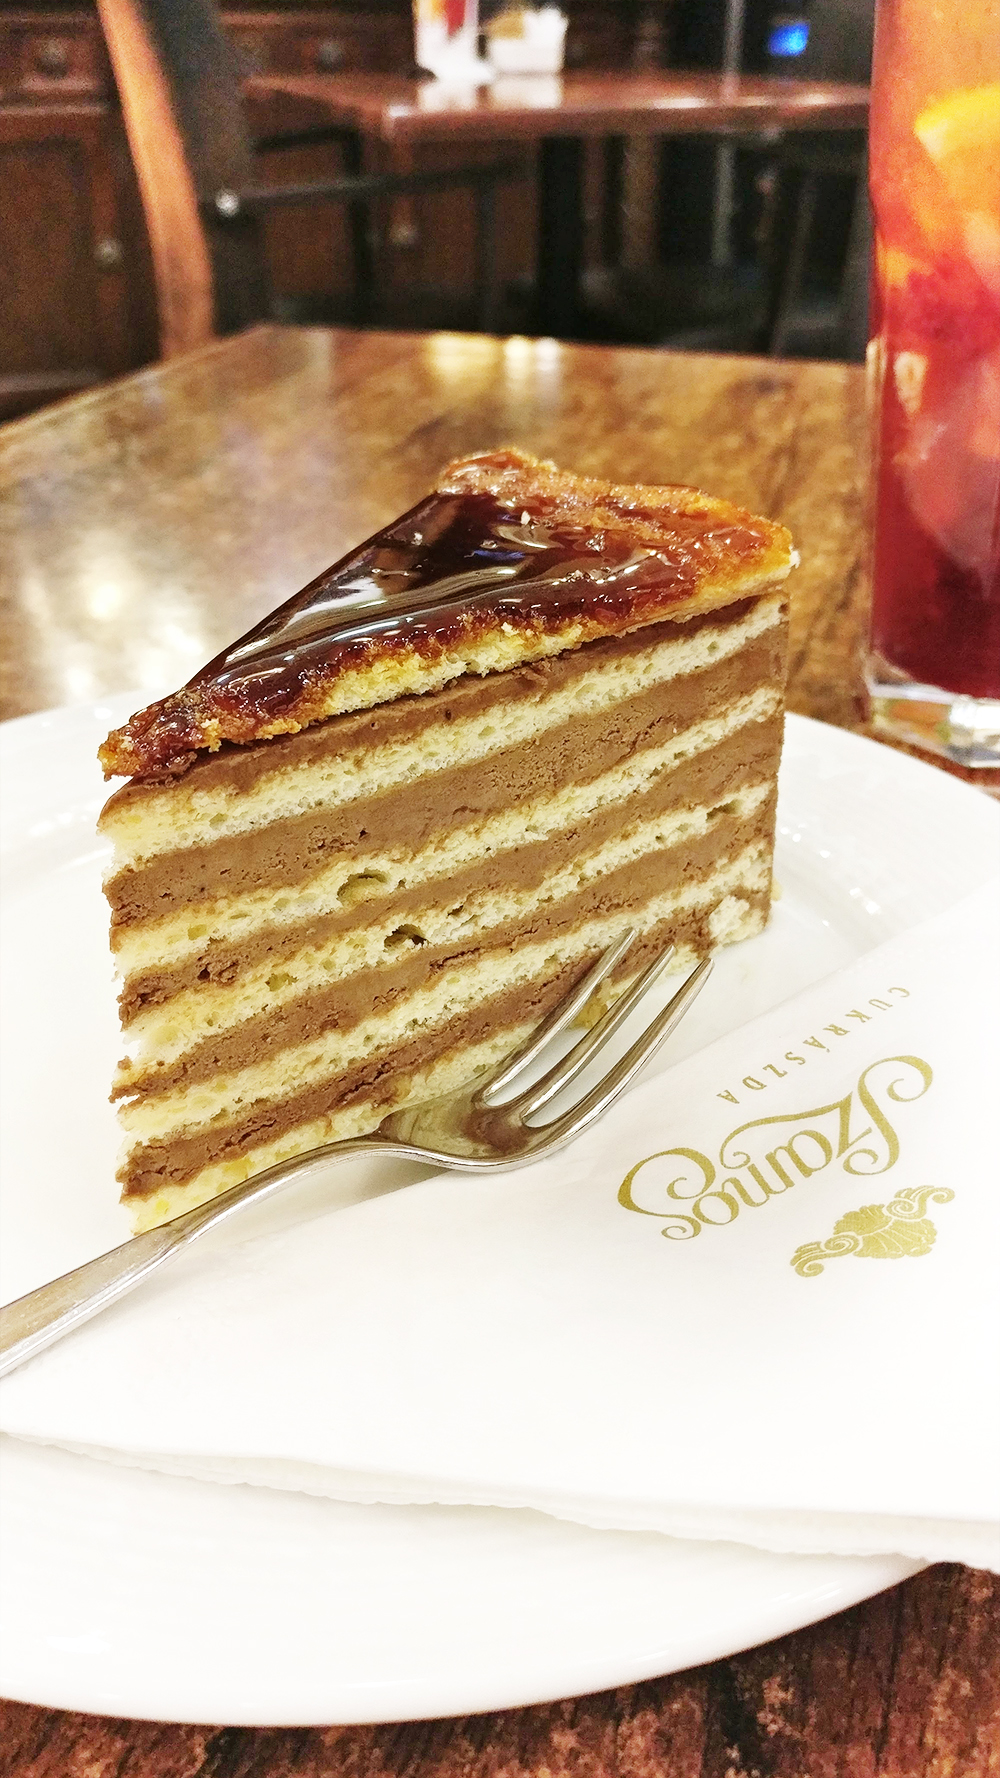 Dobos cake, the must-try Hungarian dessert - Budapest food guide to traditional Hungarian dishes, from a local | Aliz's Wonderland #budapest #hungarianfood